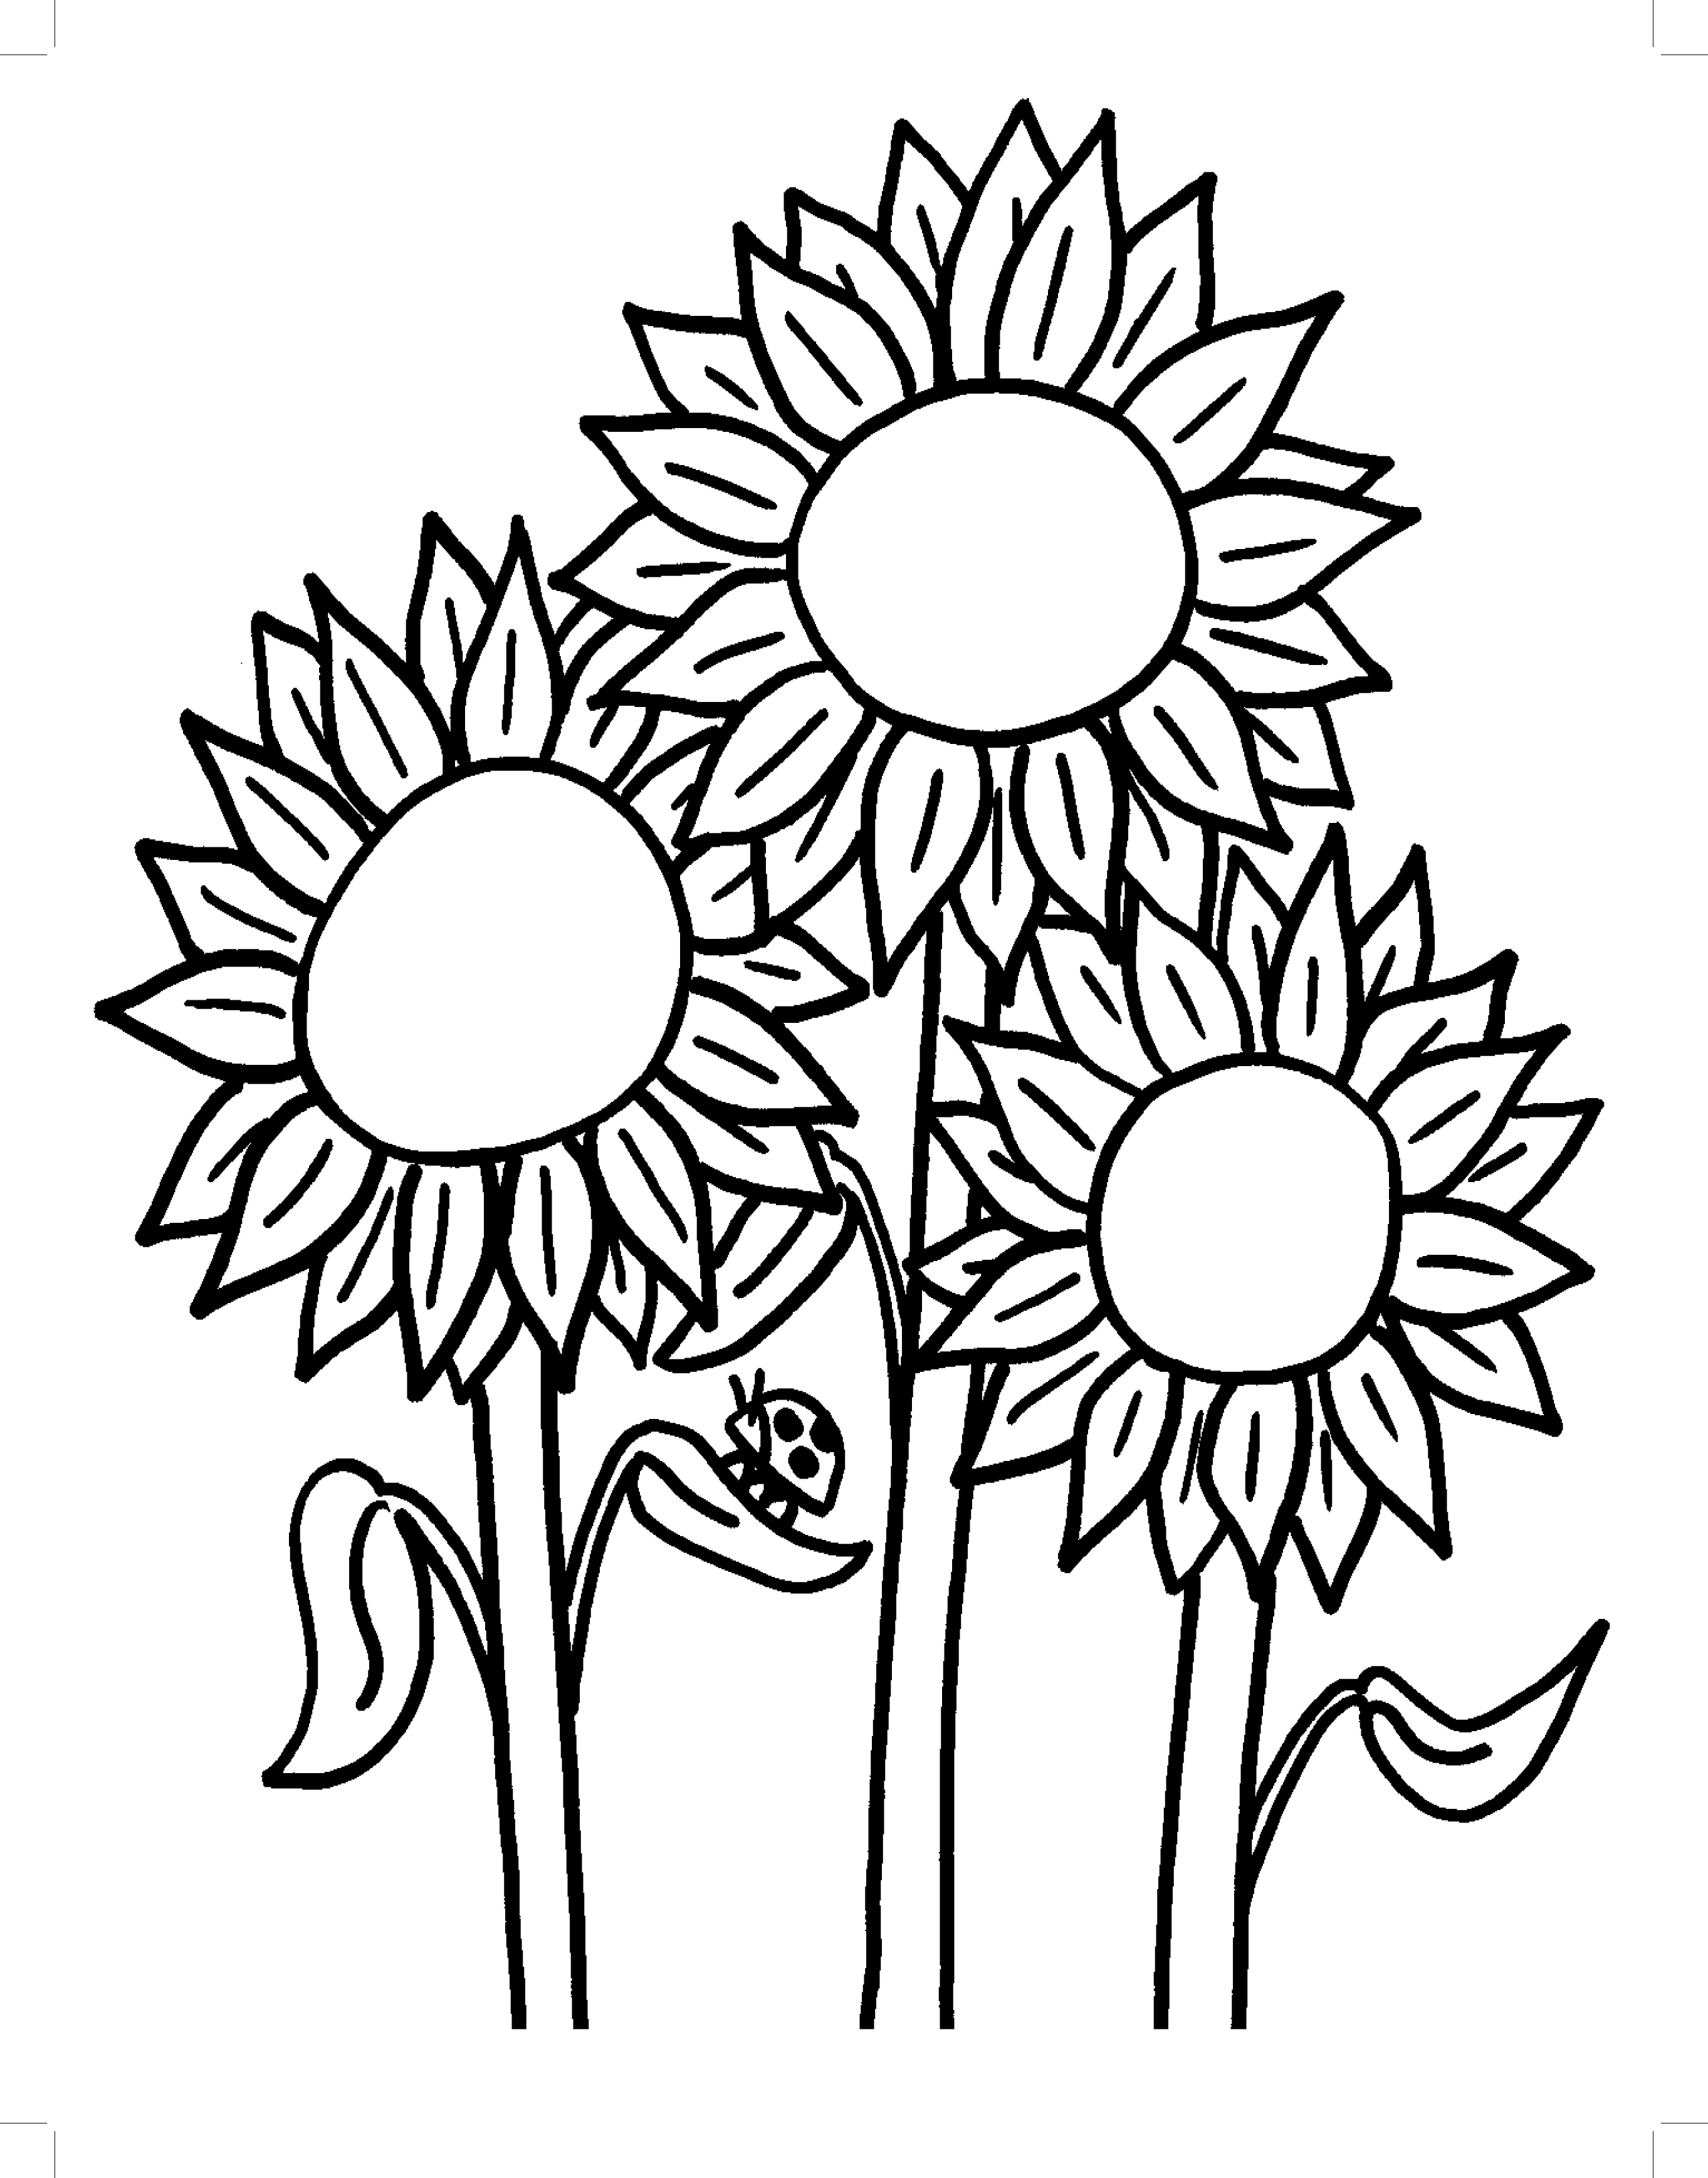 coloring sunflowers printable sunflower is blooming coloring page download print sunflowers printable coloring